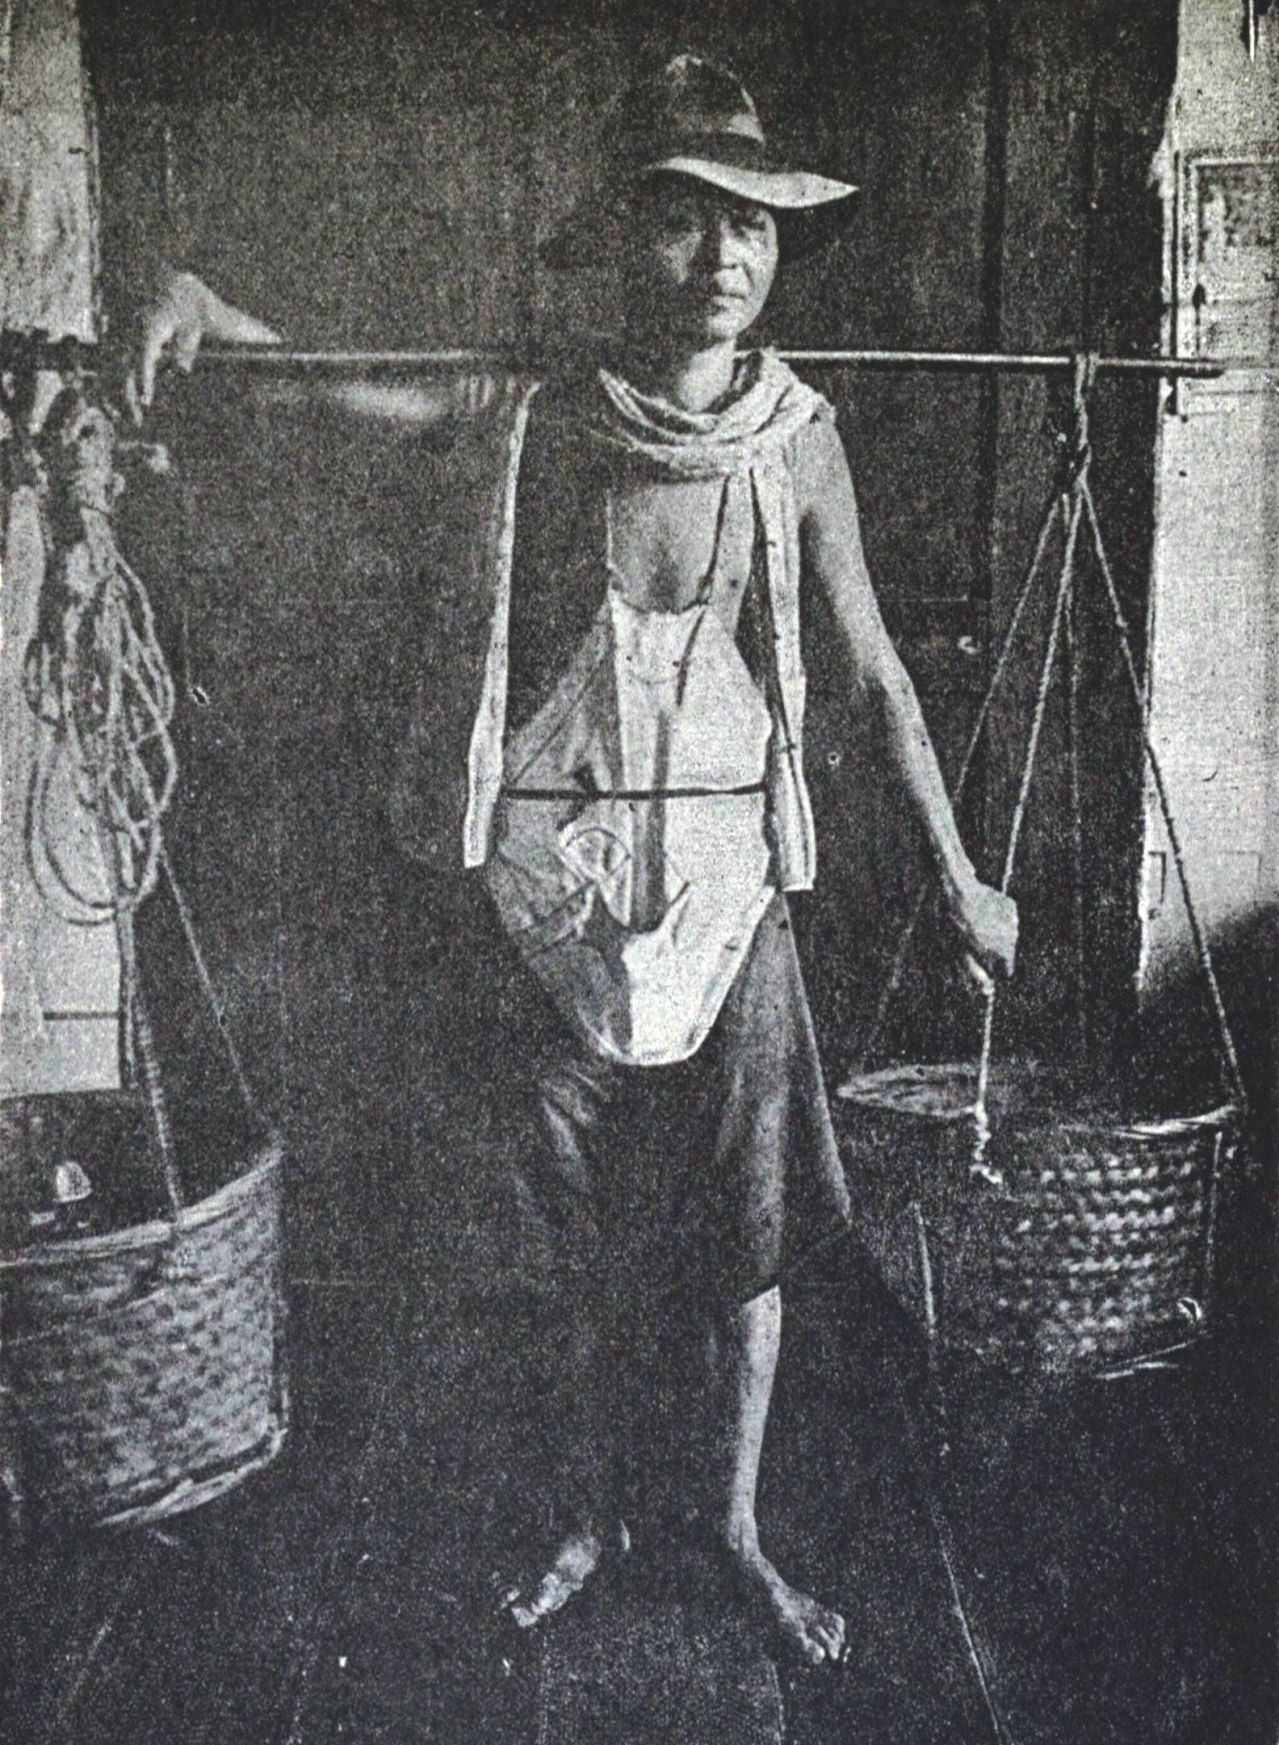 Chinese_coolie_in_the_Philippines,_1899.jpg 미국의 짱깨 외노자 쿨리.jpg